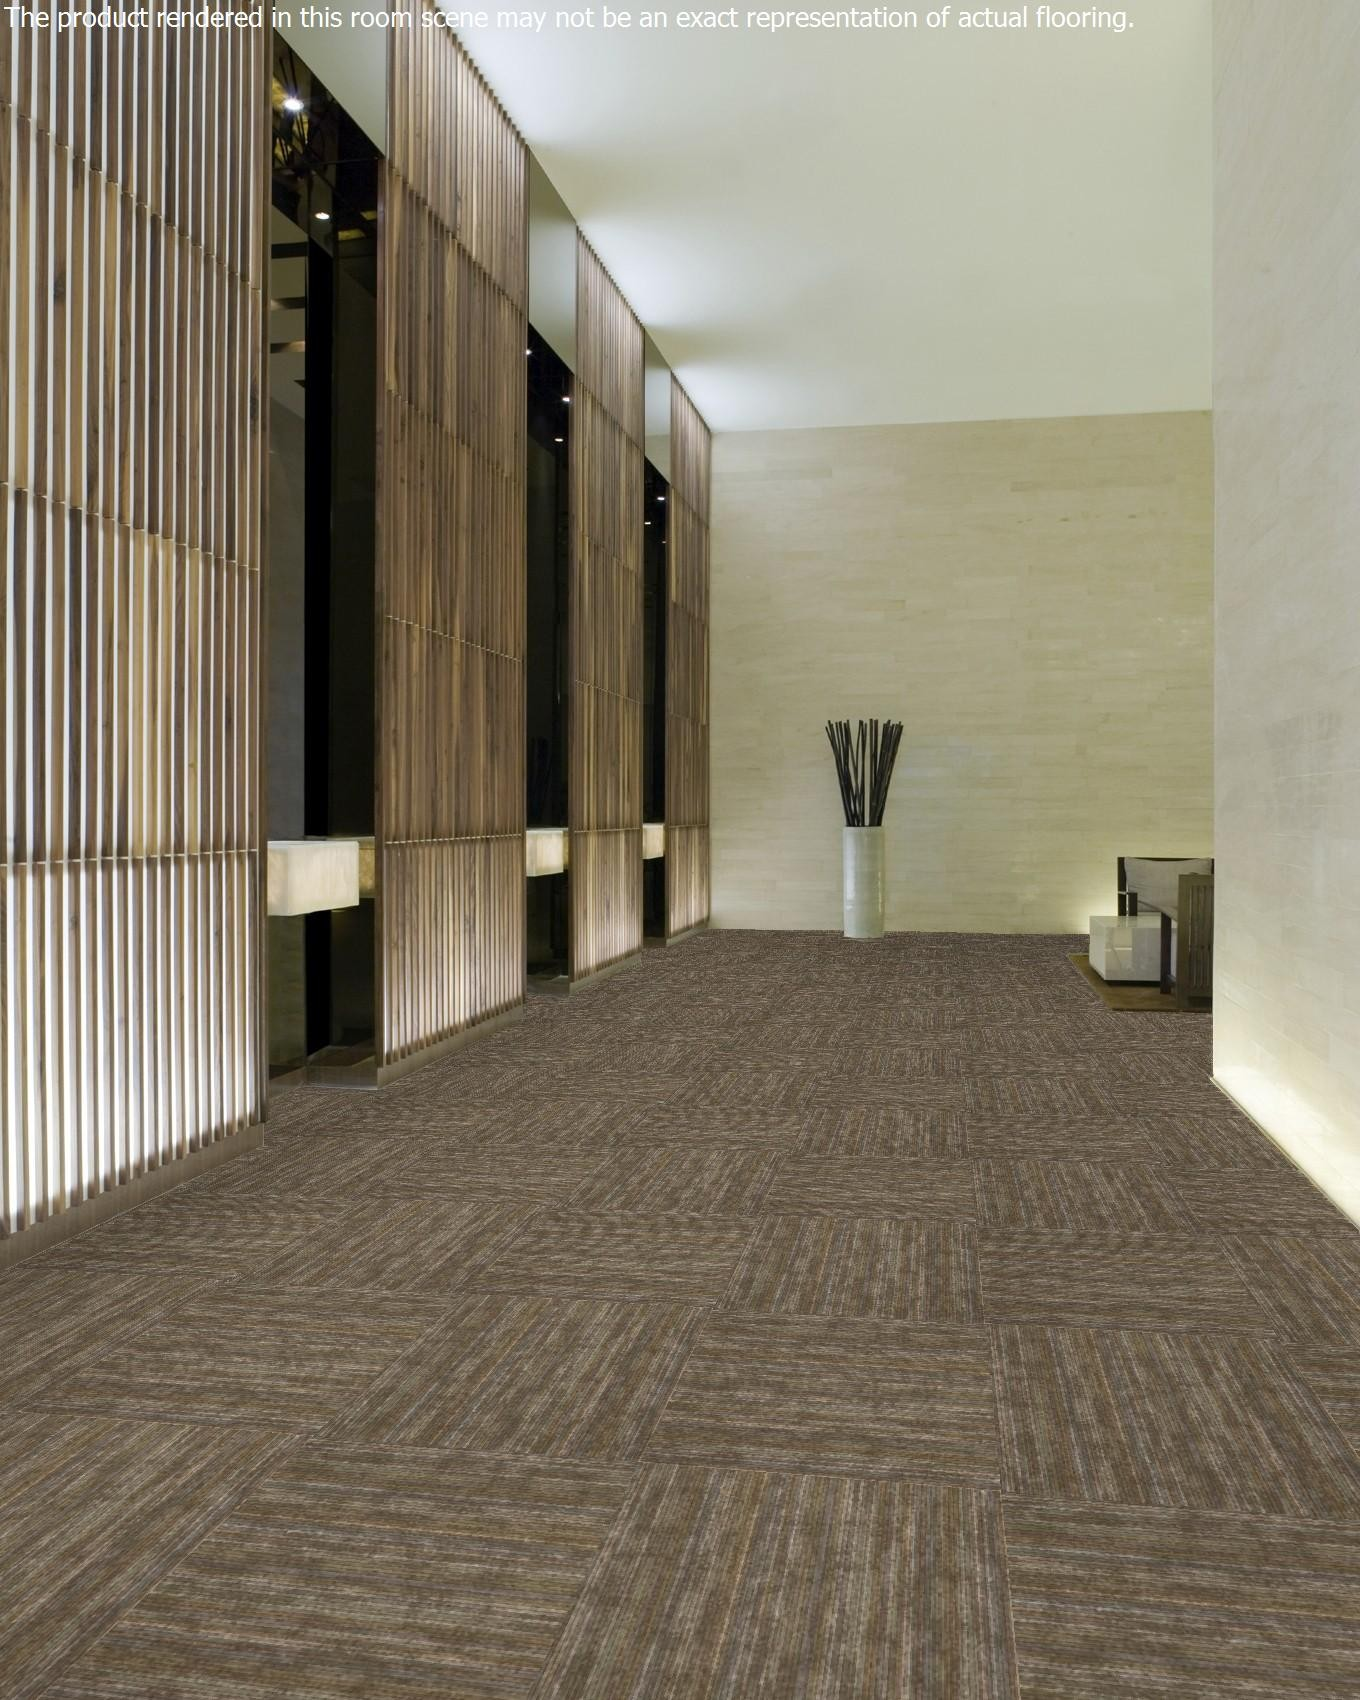 Hook Up Tile 54491 Color 91790 Carpet Tile